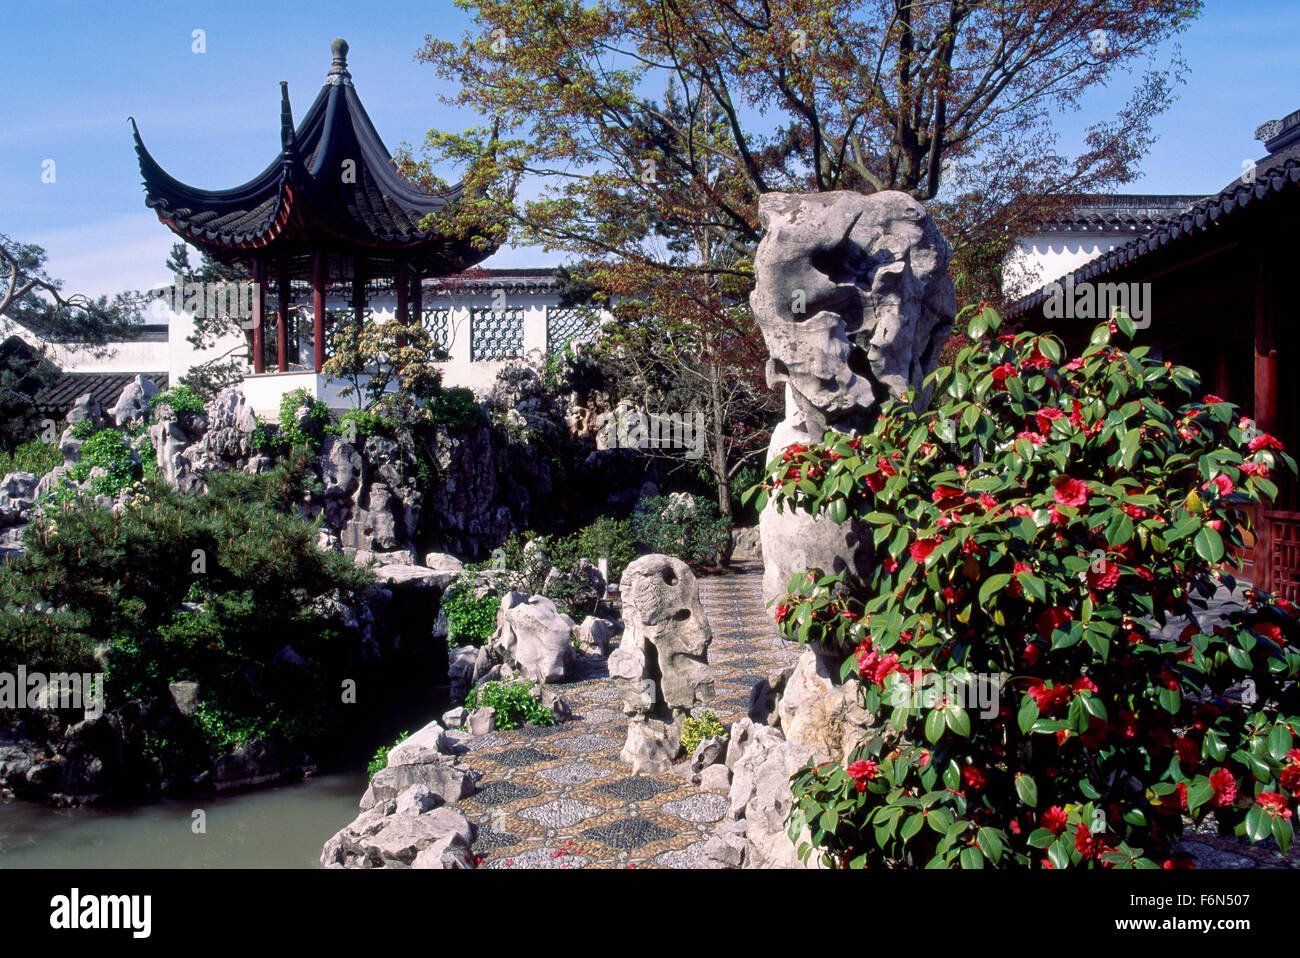 Dr. Sun Yat Sen Classical Chinese Garden In Chinatown, Vancouver, BC,